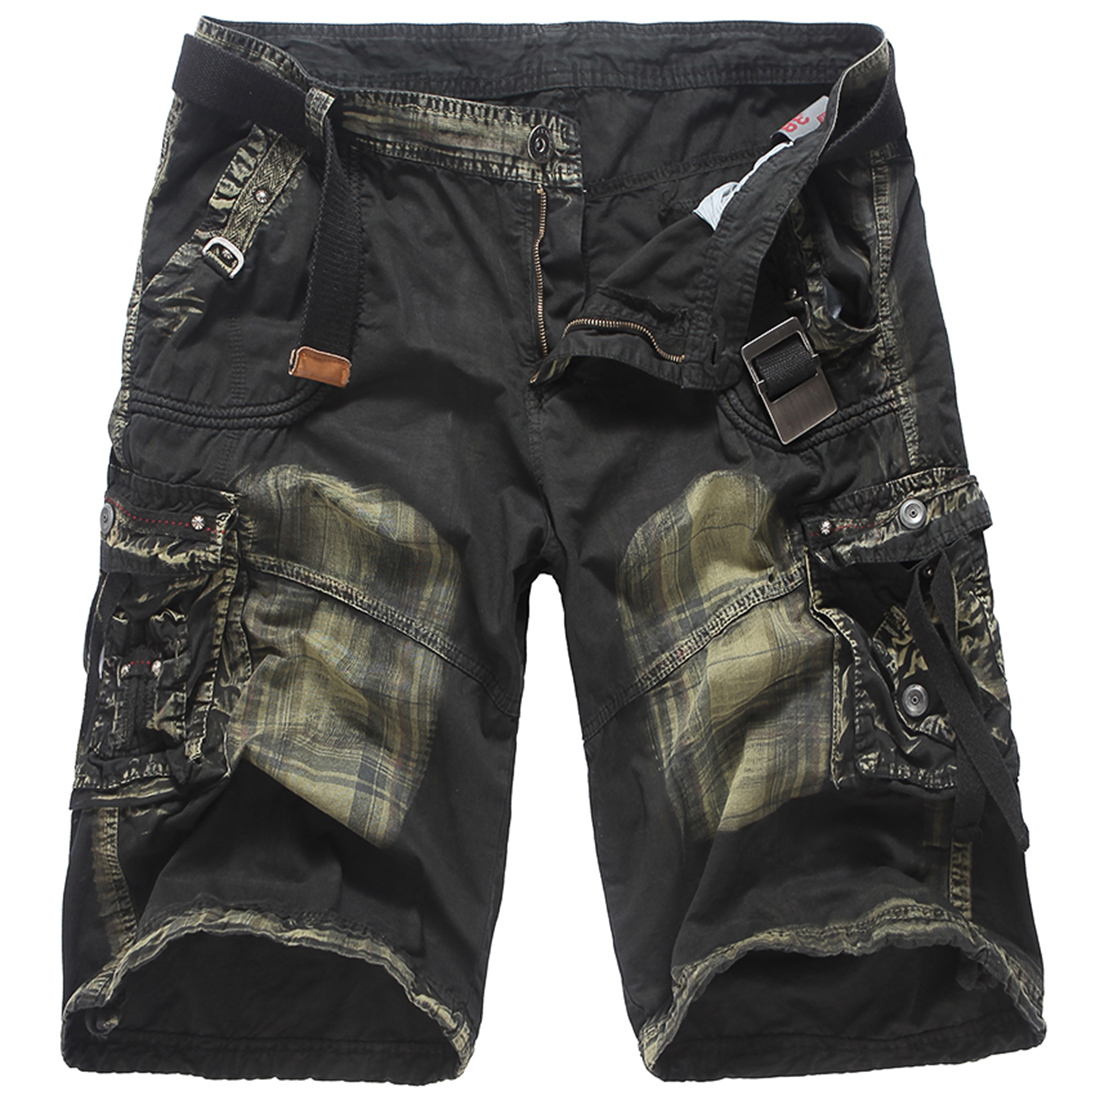 Summer loose mens cotton camouflage cargo shorts more pockets 3 color straight casual beach shorts safari style short trousers